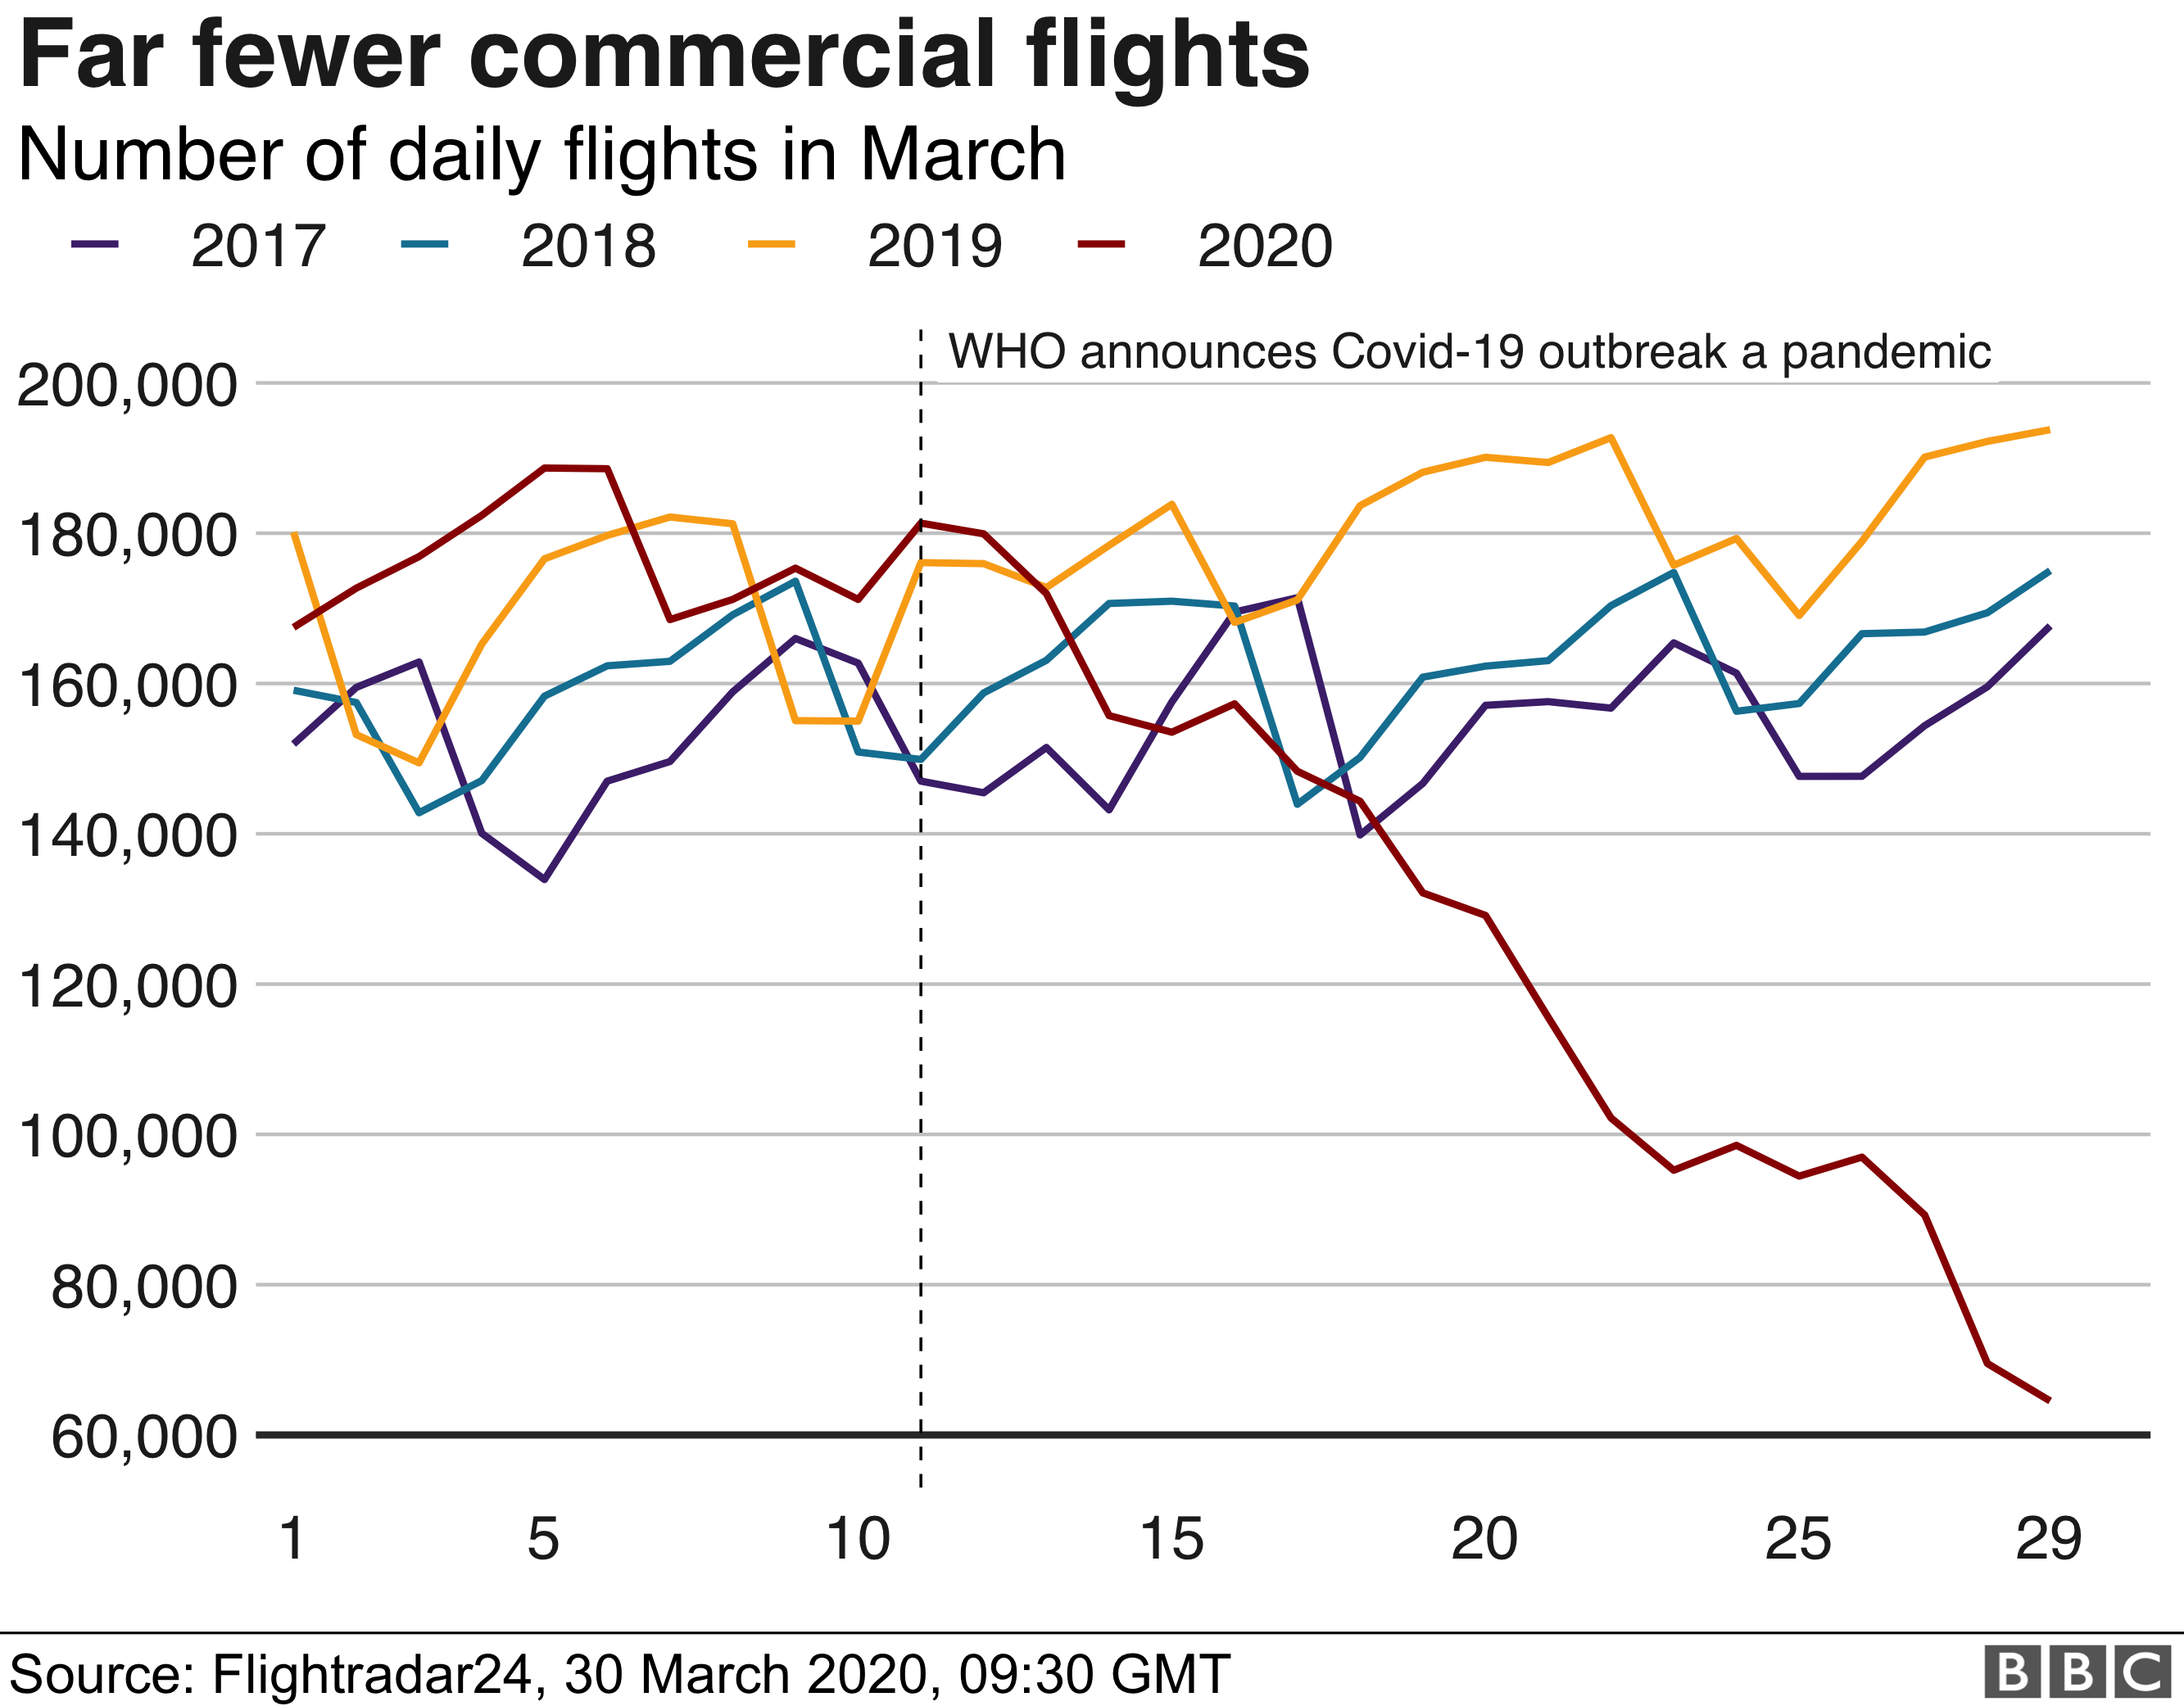 Total number of daily commercial fligths